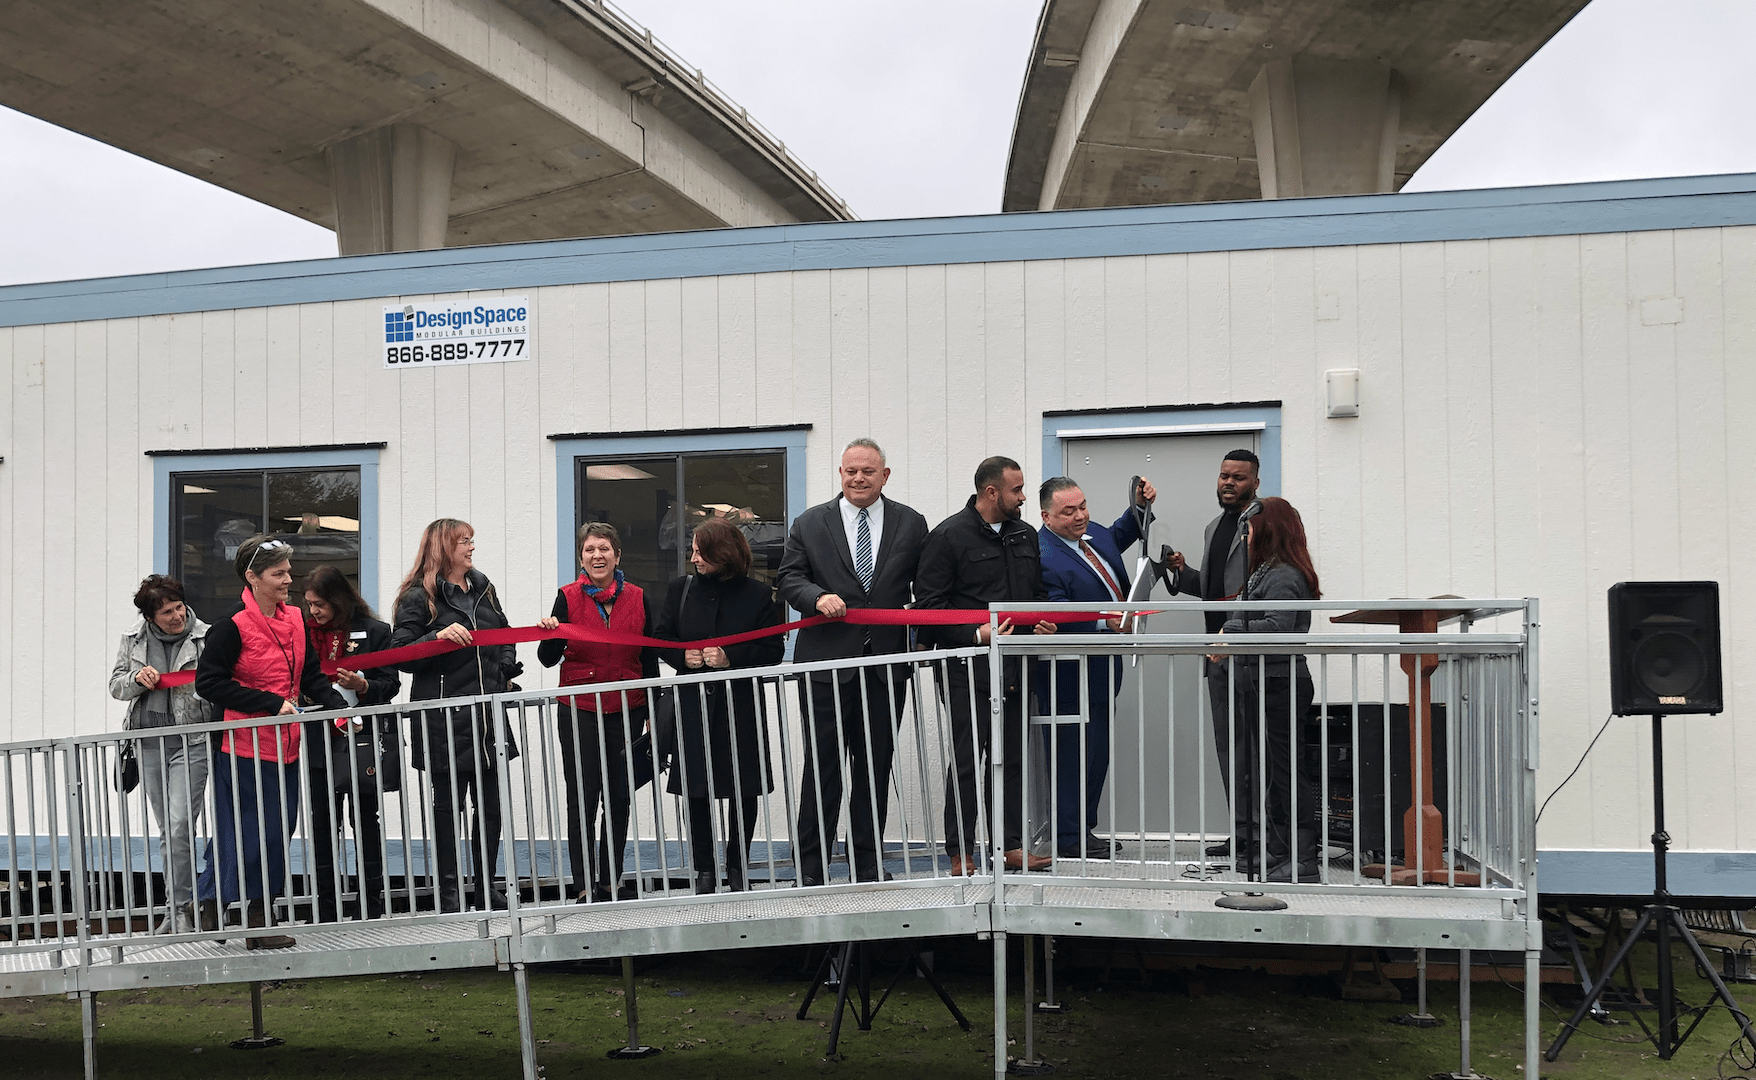 Ribbon cutting ceremony for opening of temporary structure for Stockton Shelter for the Homeless